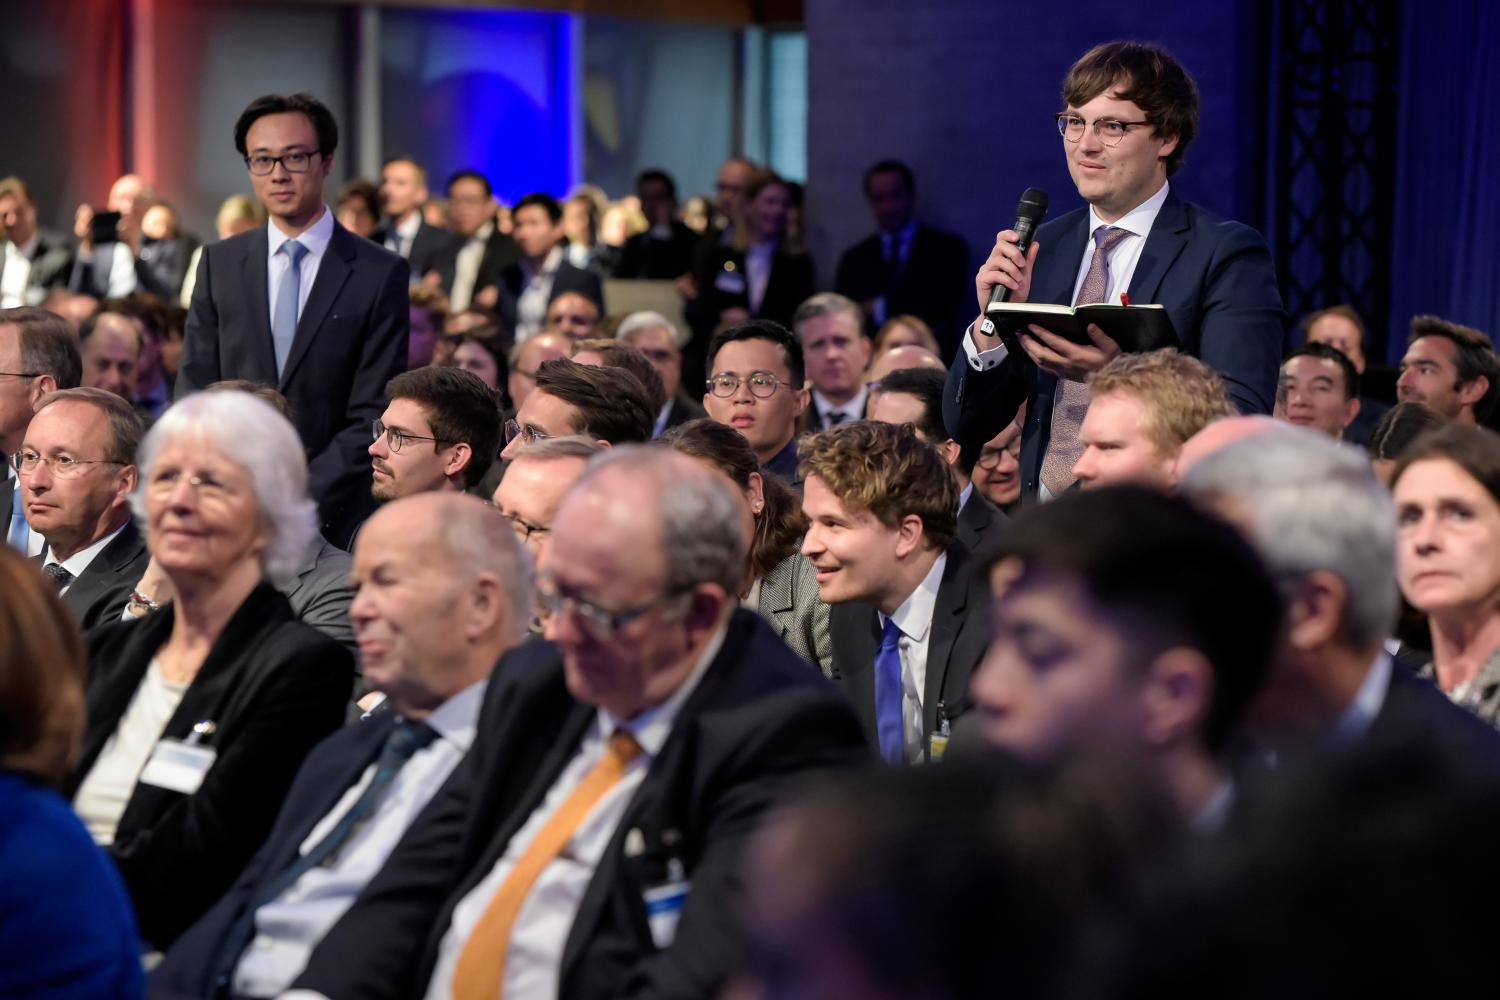 The St. Gallen Symposium Global Essay Competition 2021 ...